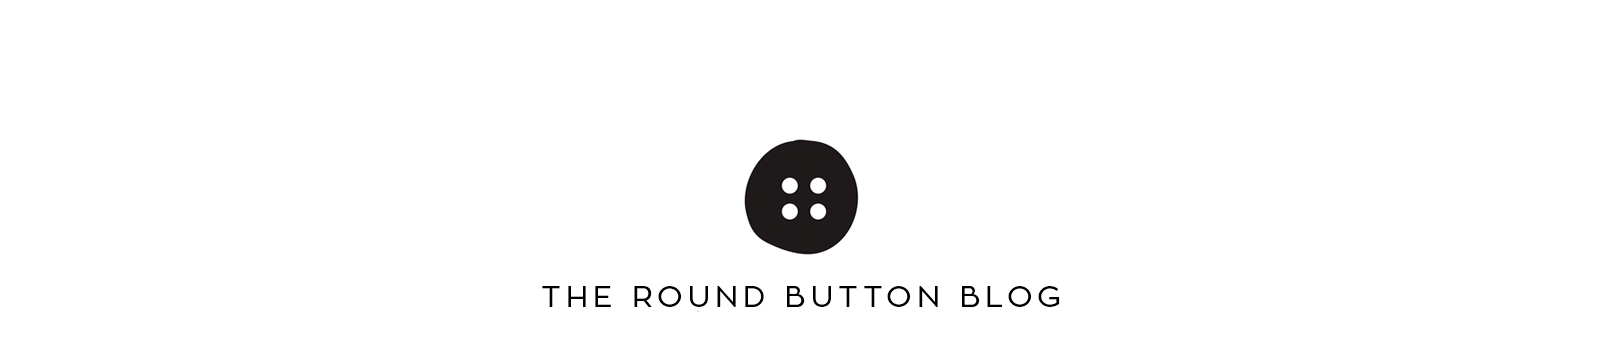 the Round Button